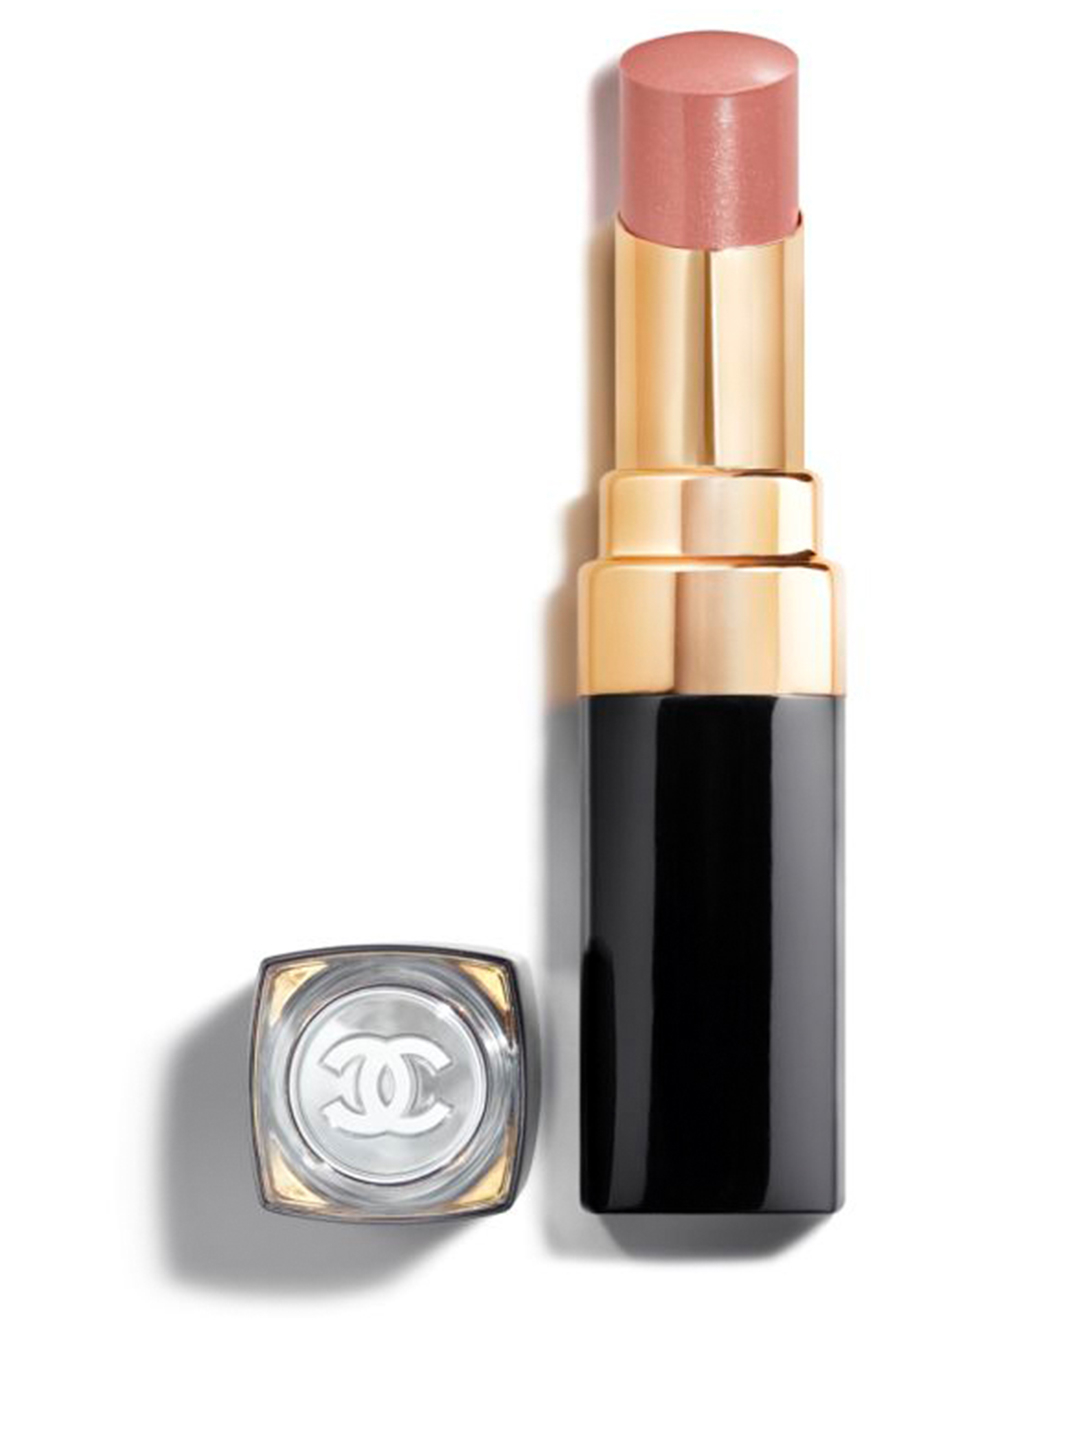 CHANEL La Couleur, La Brillance, L'Intensité En Un Éclair CHANEL Écru